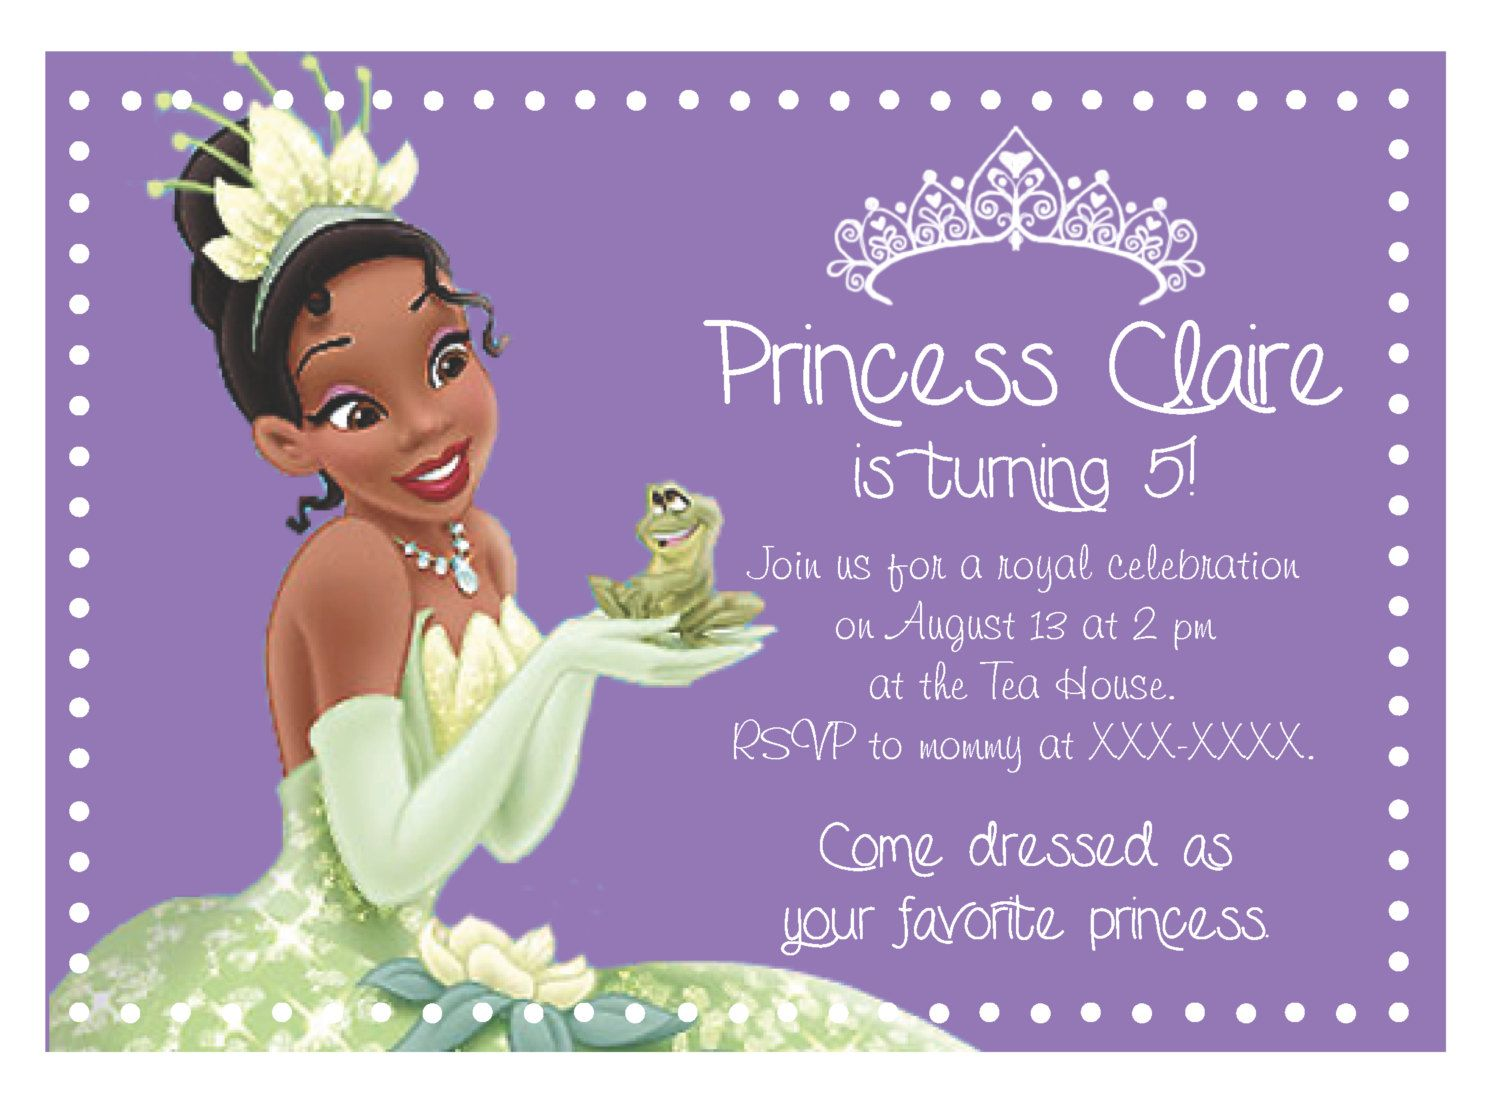 Princess Tiana Invitations Cupcake Toppers and Banner 600 via – Princess Tiana Party Invitations